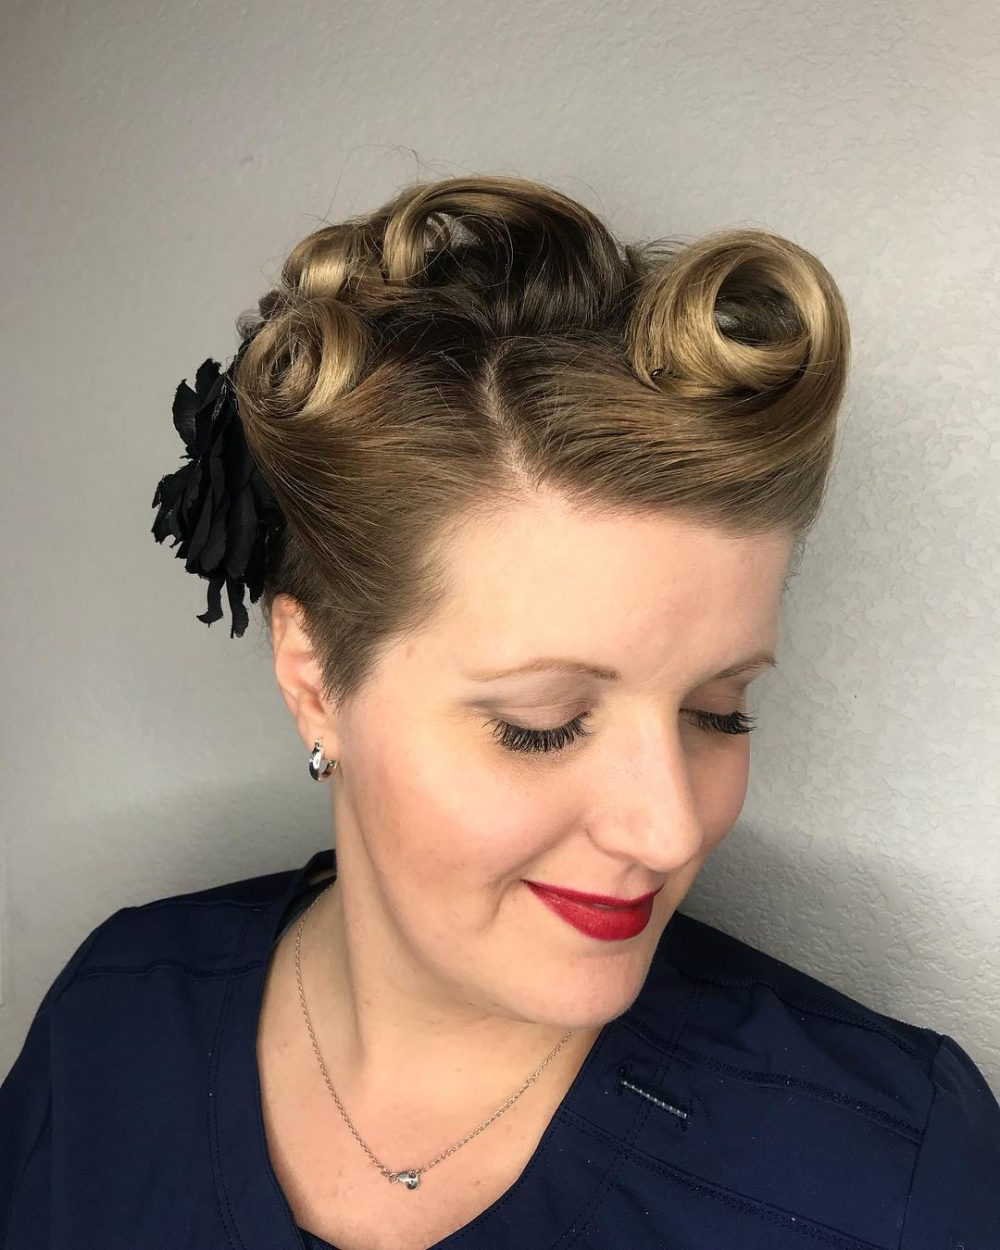 24 Cutest Updos For Short Hair Of 2019 Within Most Up To Date Medium Hairstyles For Special Occasions (View 7 of 20)